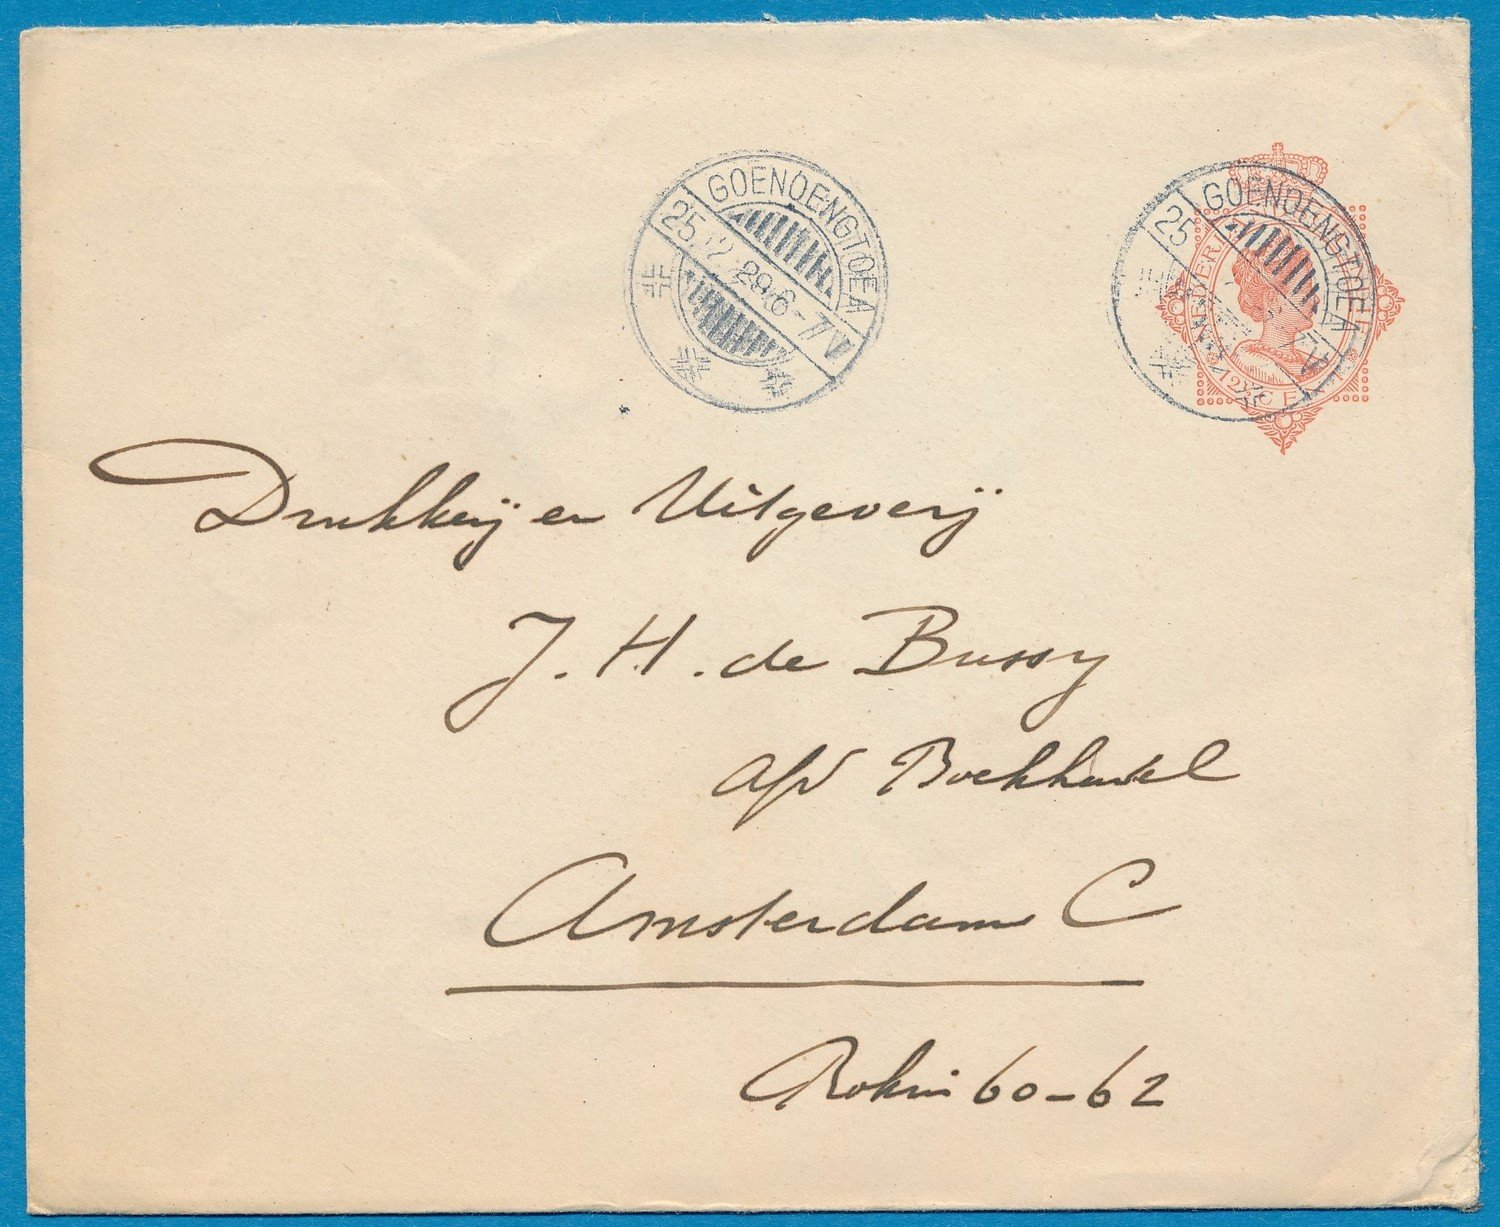 NETHERLANDS EAST INDIES envelope 1929 Goenoengtoea